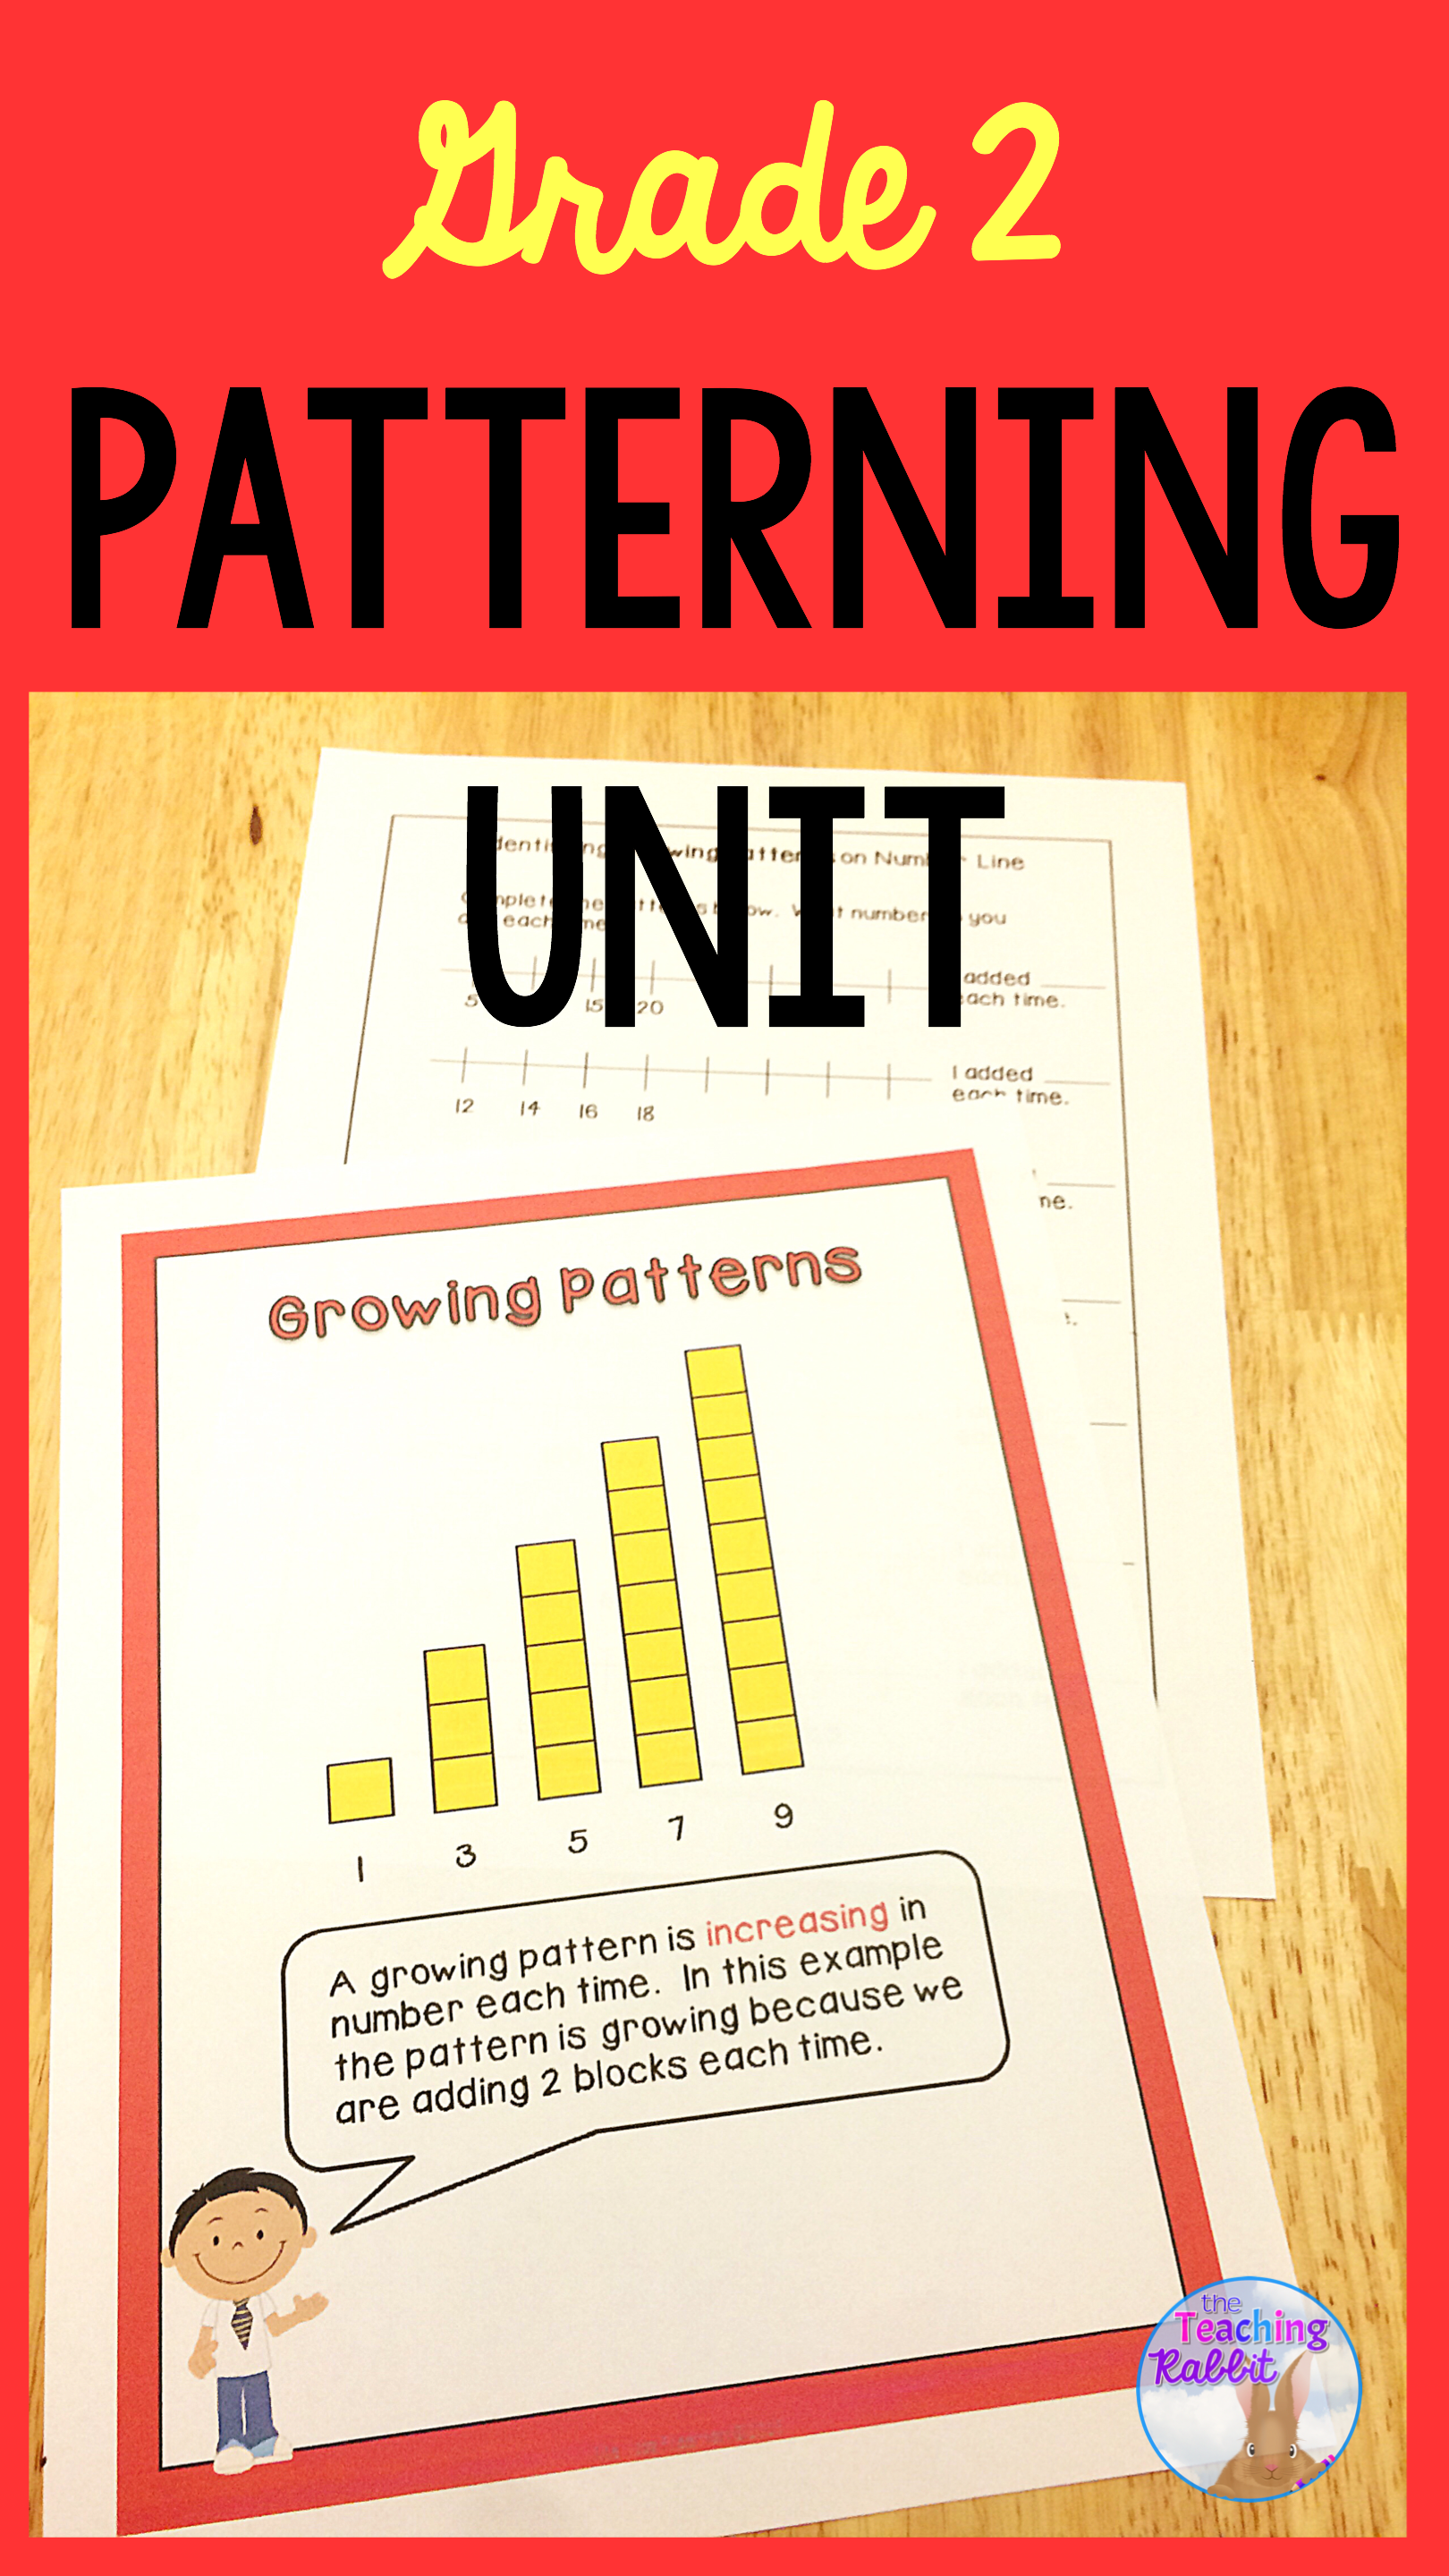 This Patterning Unit For Grade 2 Is Based On The Ontario